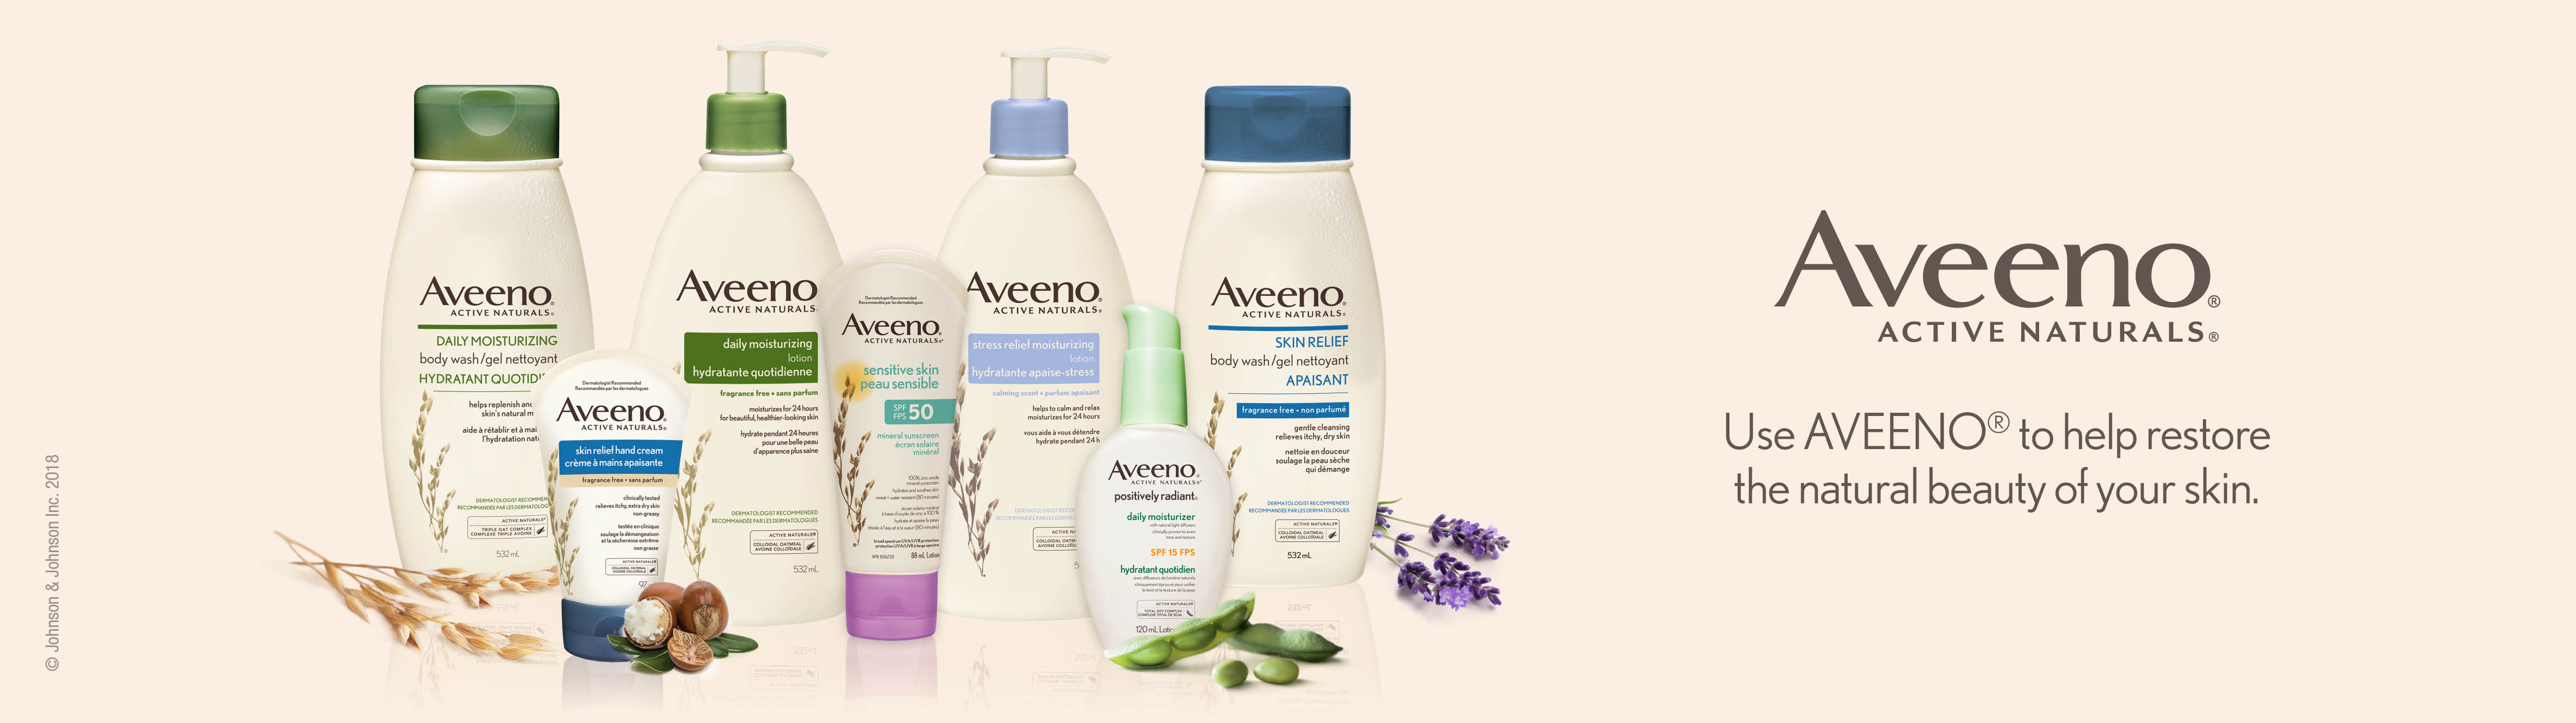 Buy Aveeno at Well.ca